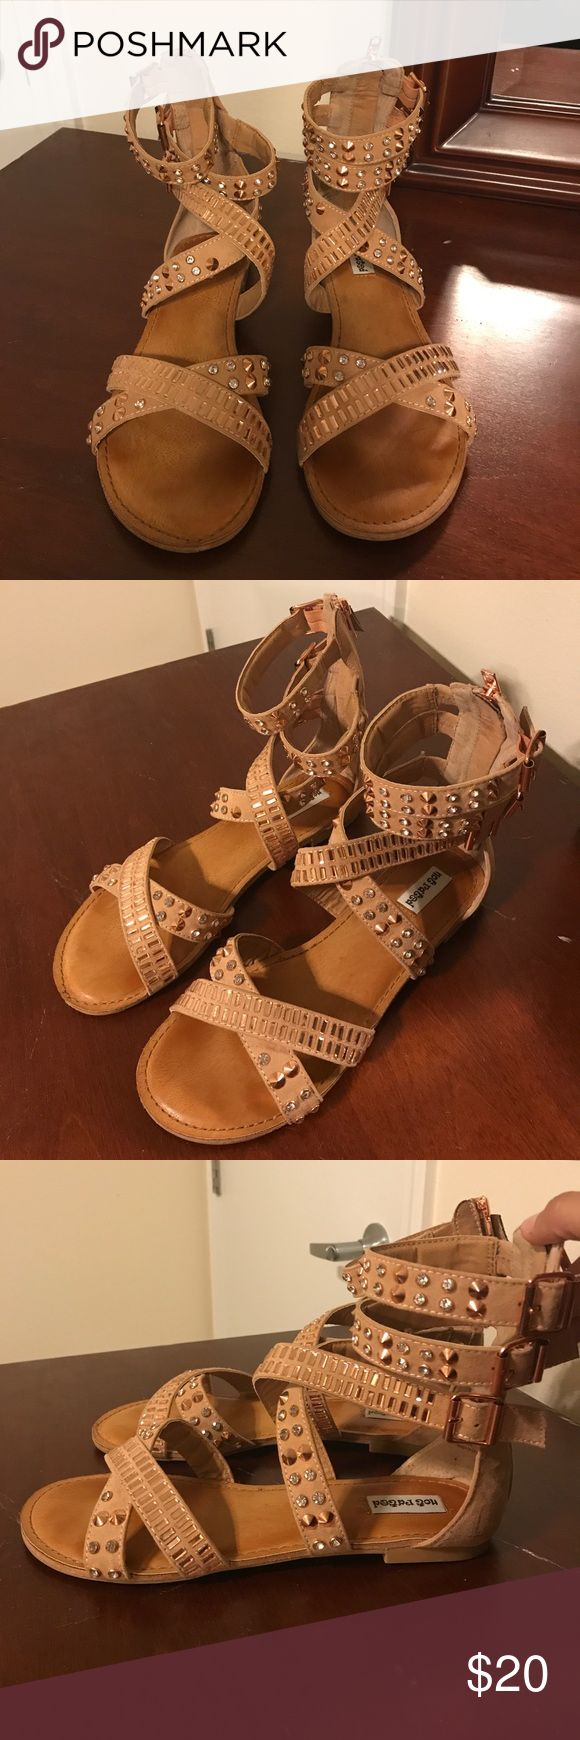 Not Rated Sandals Gladiator flat sandals Not Rated Shoes Sandals